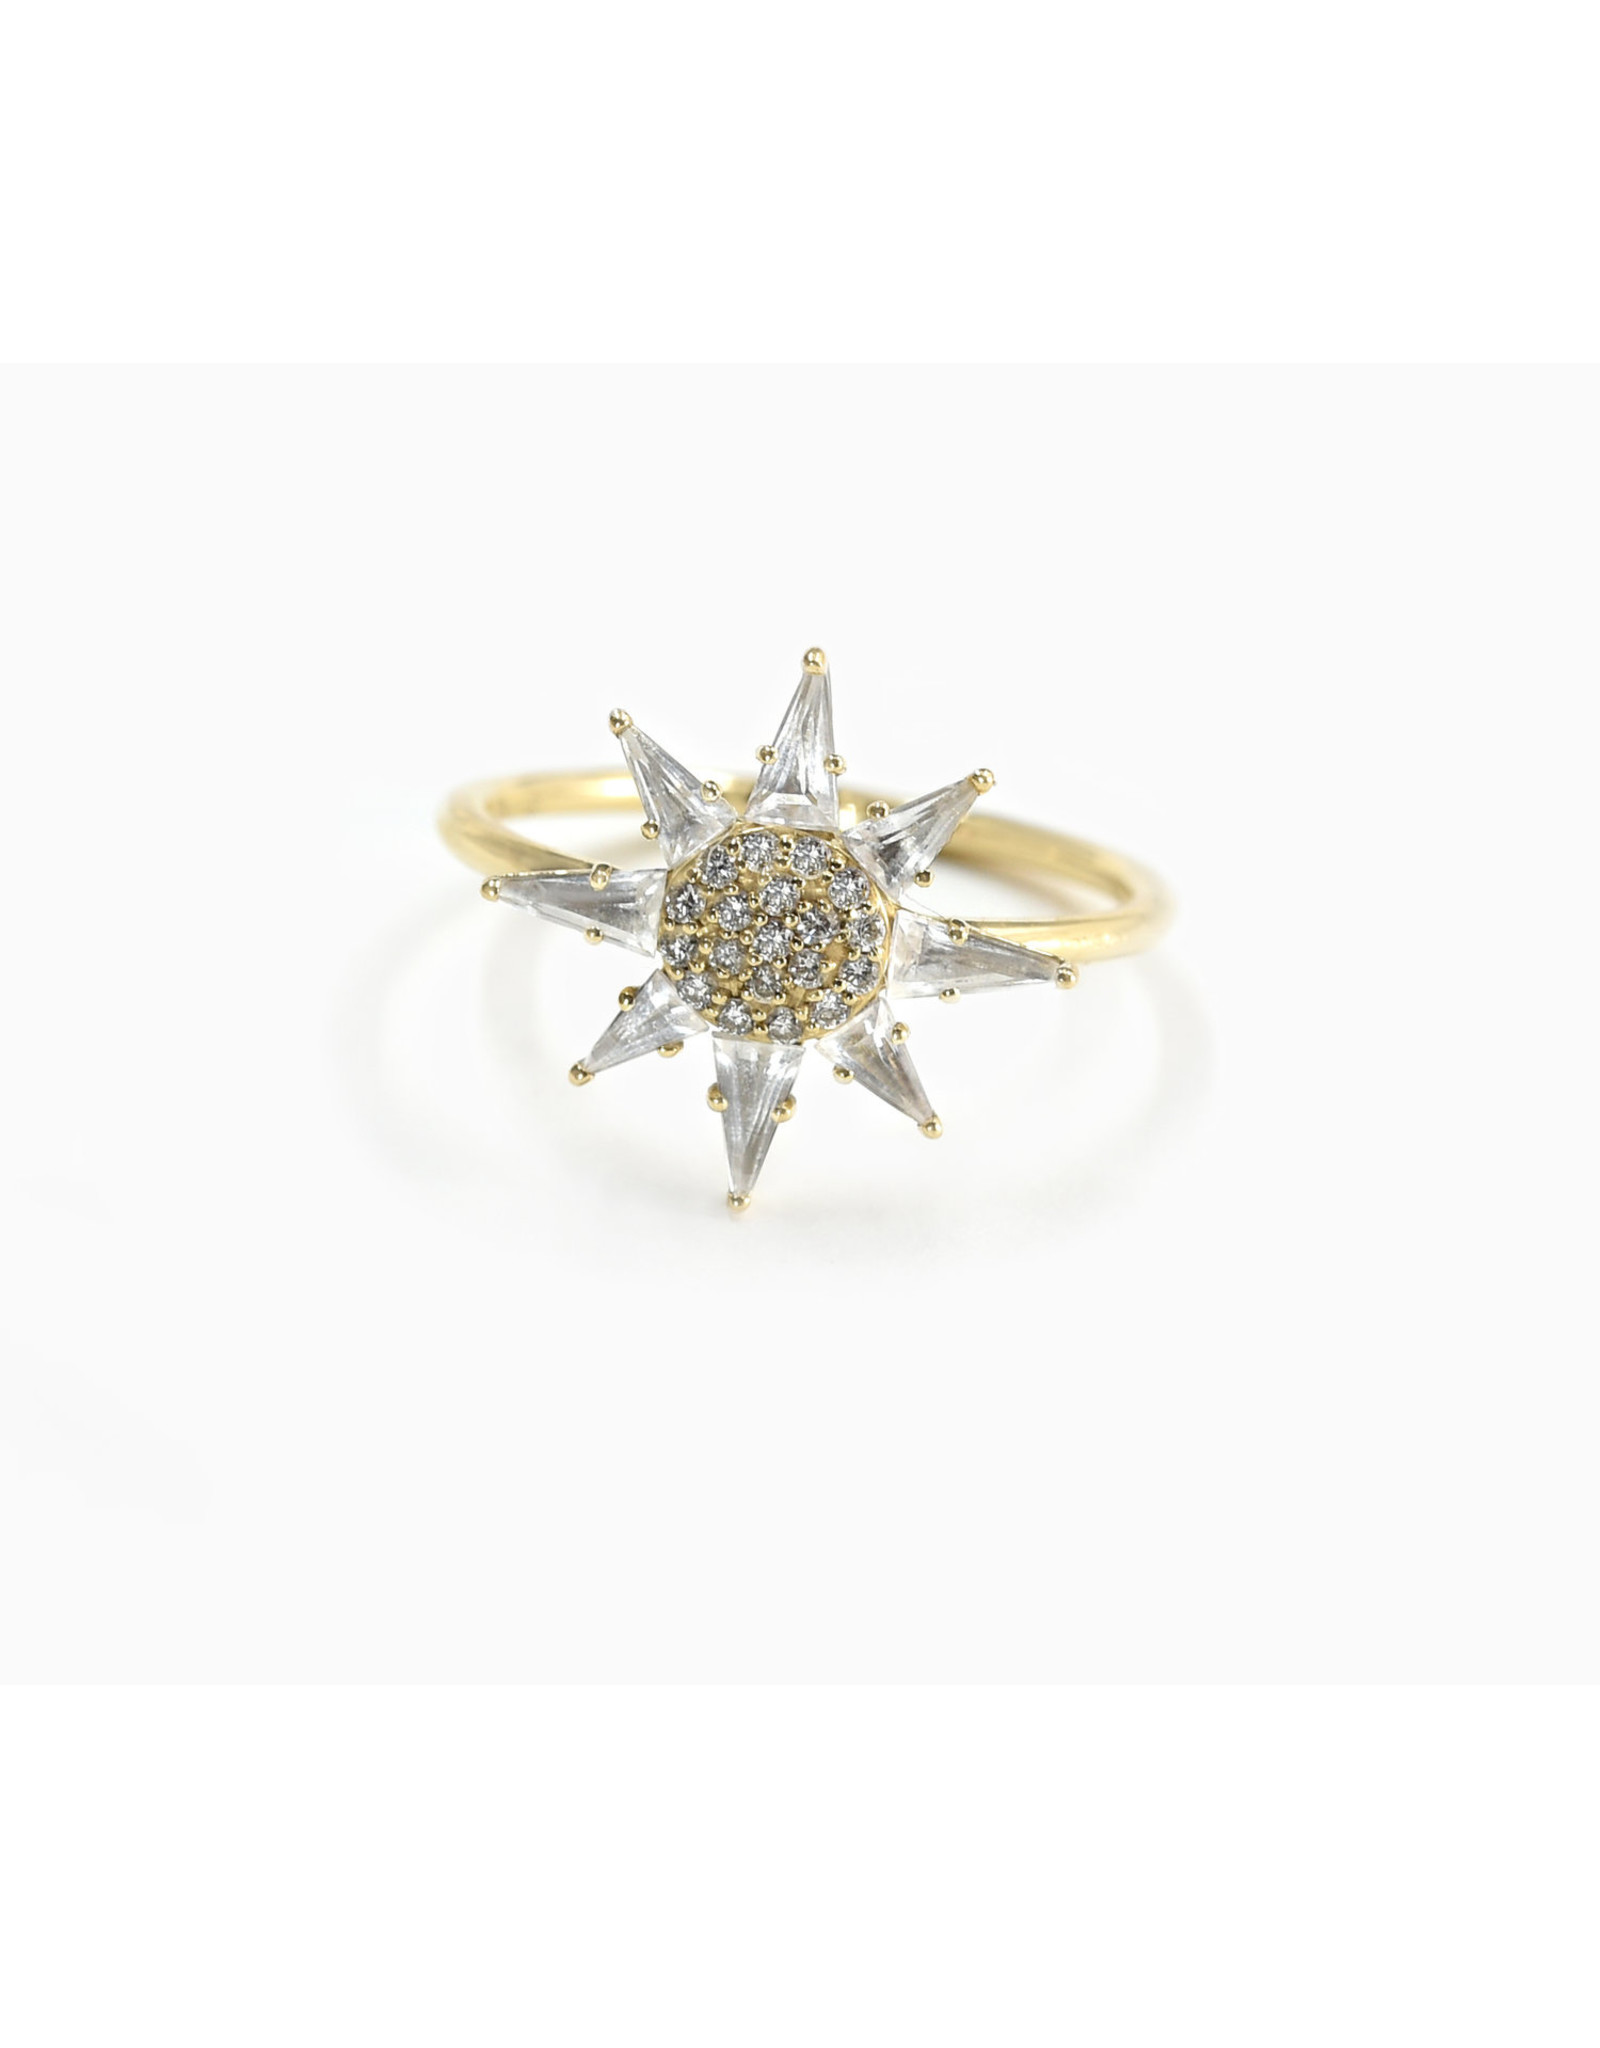 Bondeye Jewelry Bondeye Clio White Topaz Ring (Size: 5, Color: Yellow Gold / White Topaz / White Diamond)